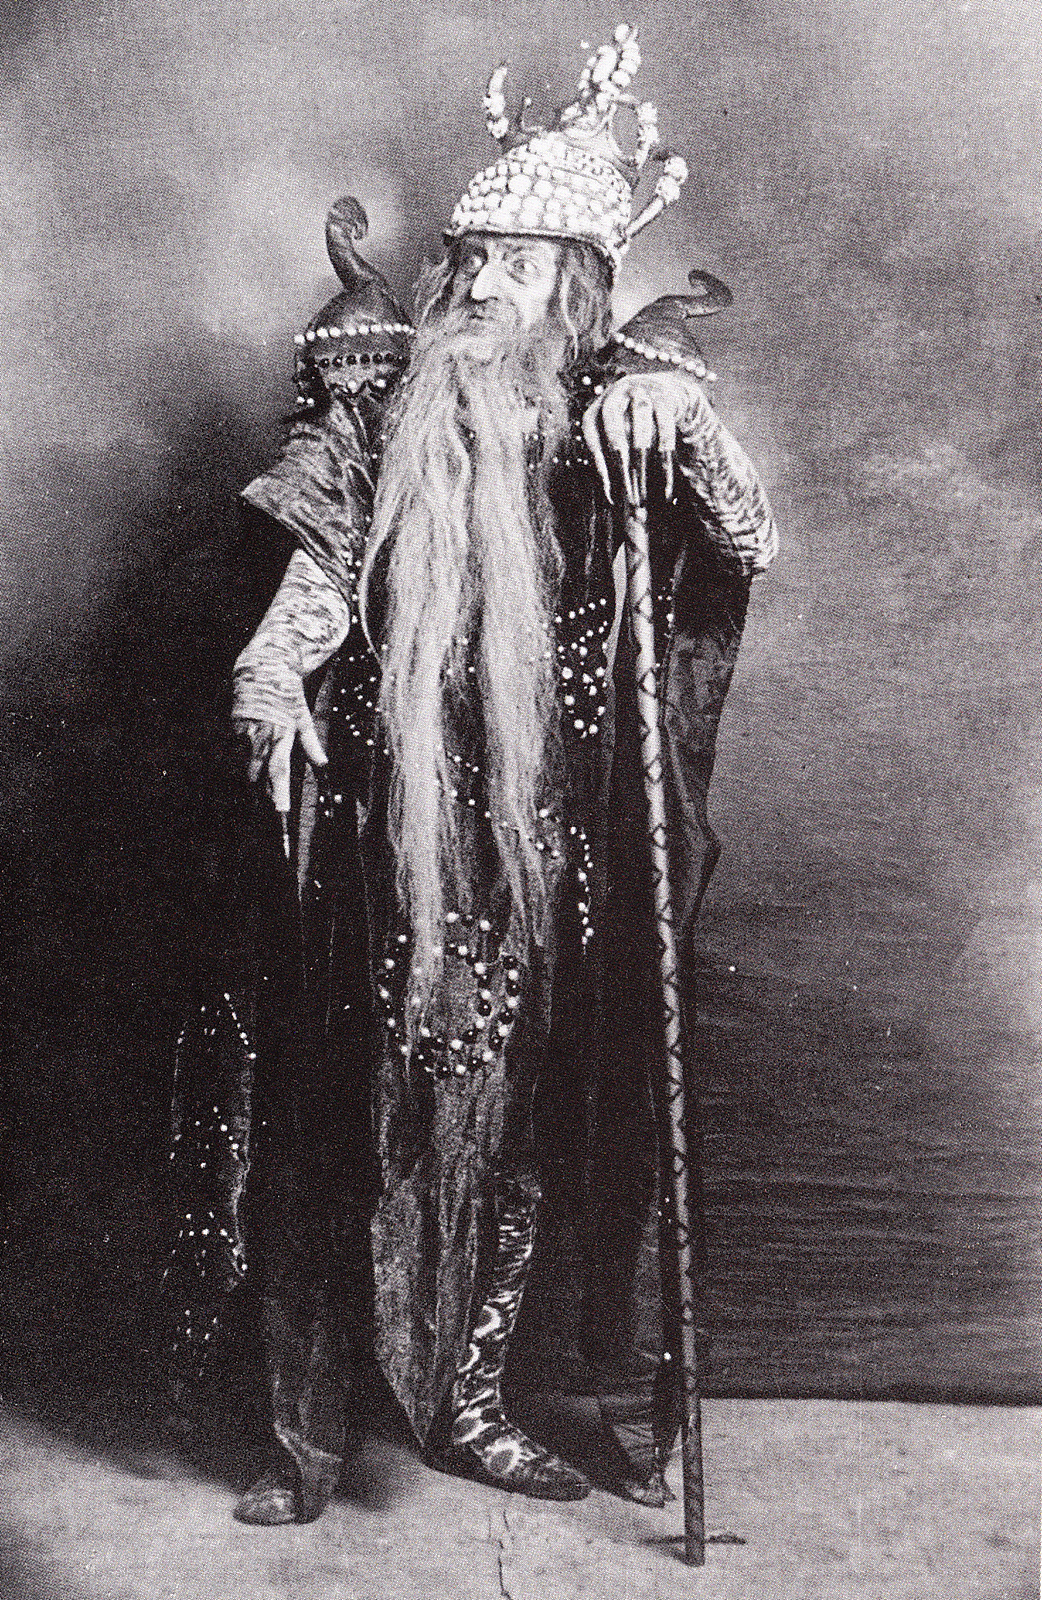 Cecchetti as Kastchei in 'The Firebird' Ballets Russes, 1910 (photo courtesy Livia Brillarelli)